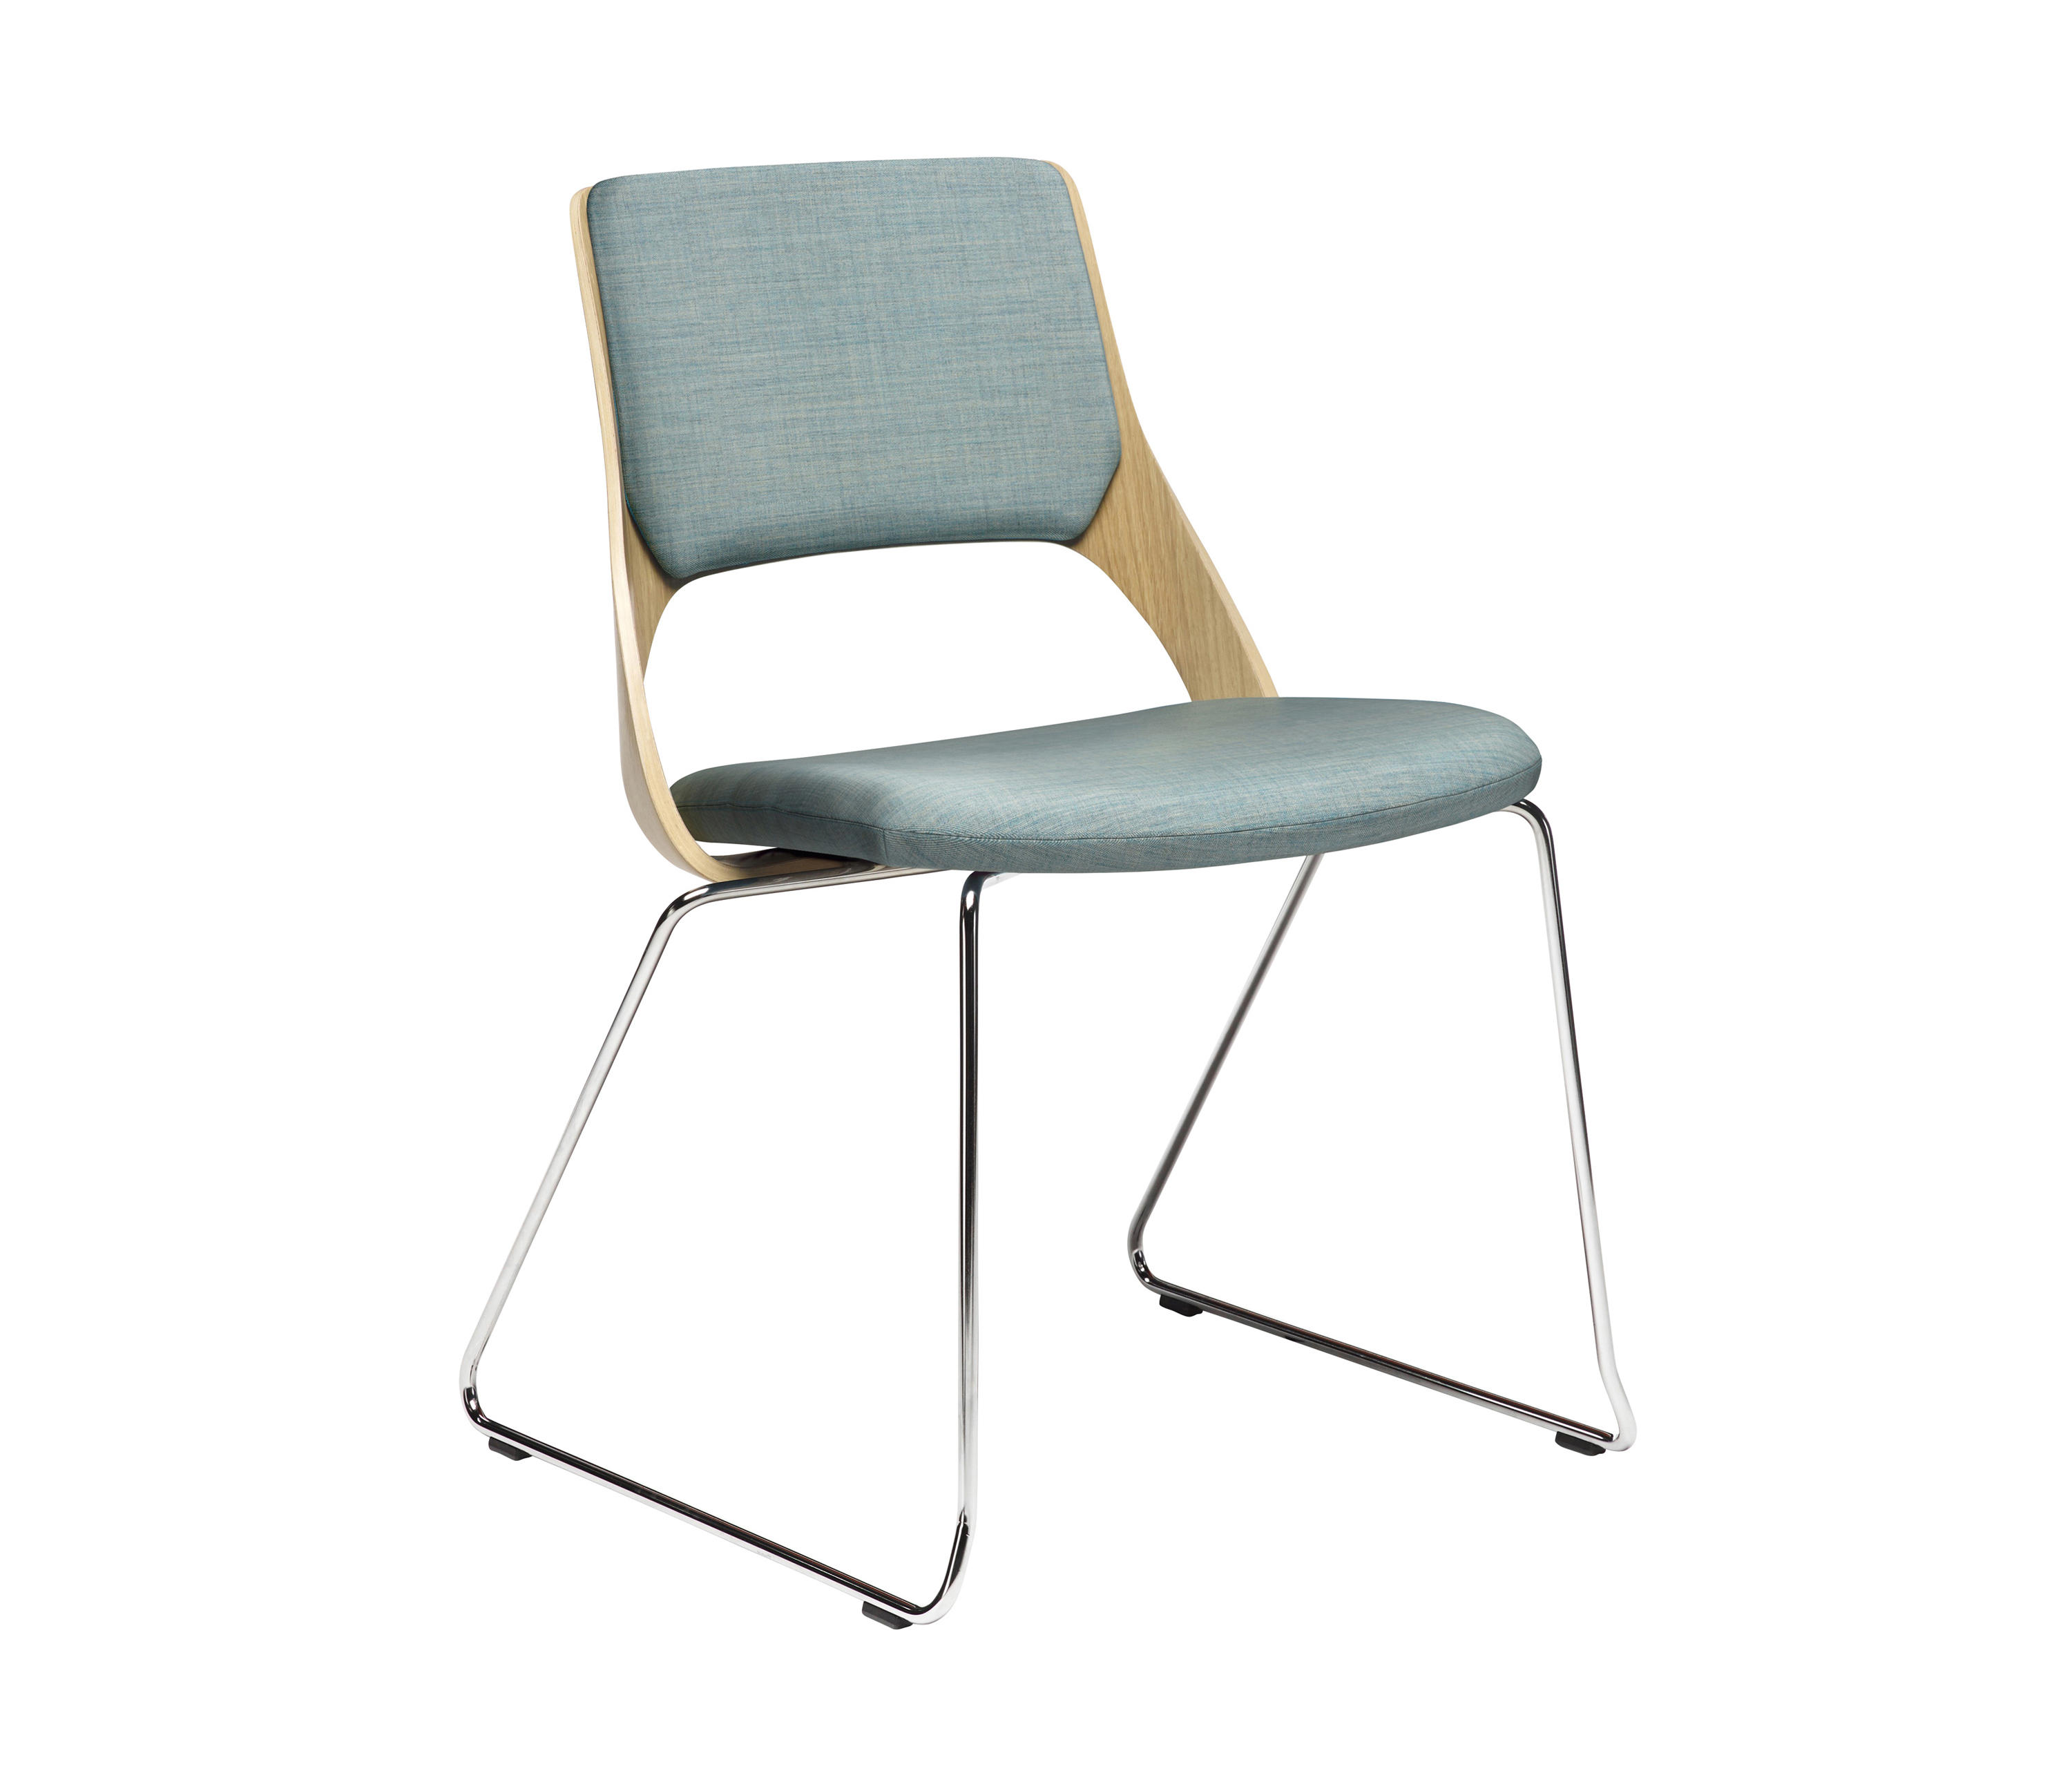 EMBRACE - Visitors chairs / Side chairs from Kinnarps | Architonic